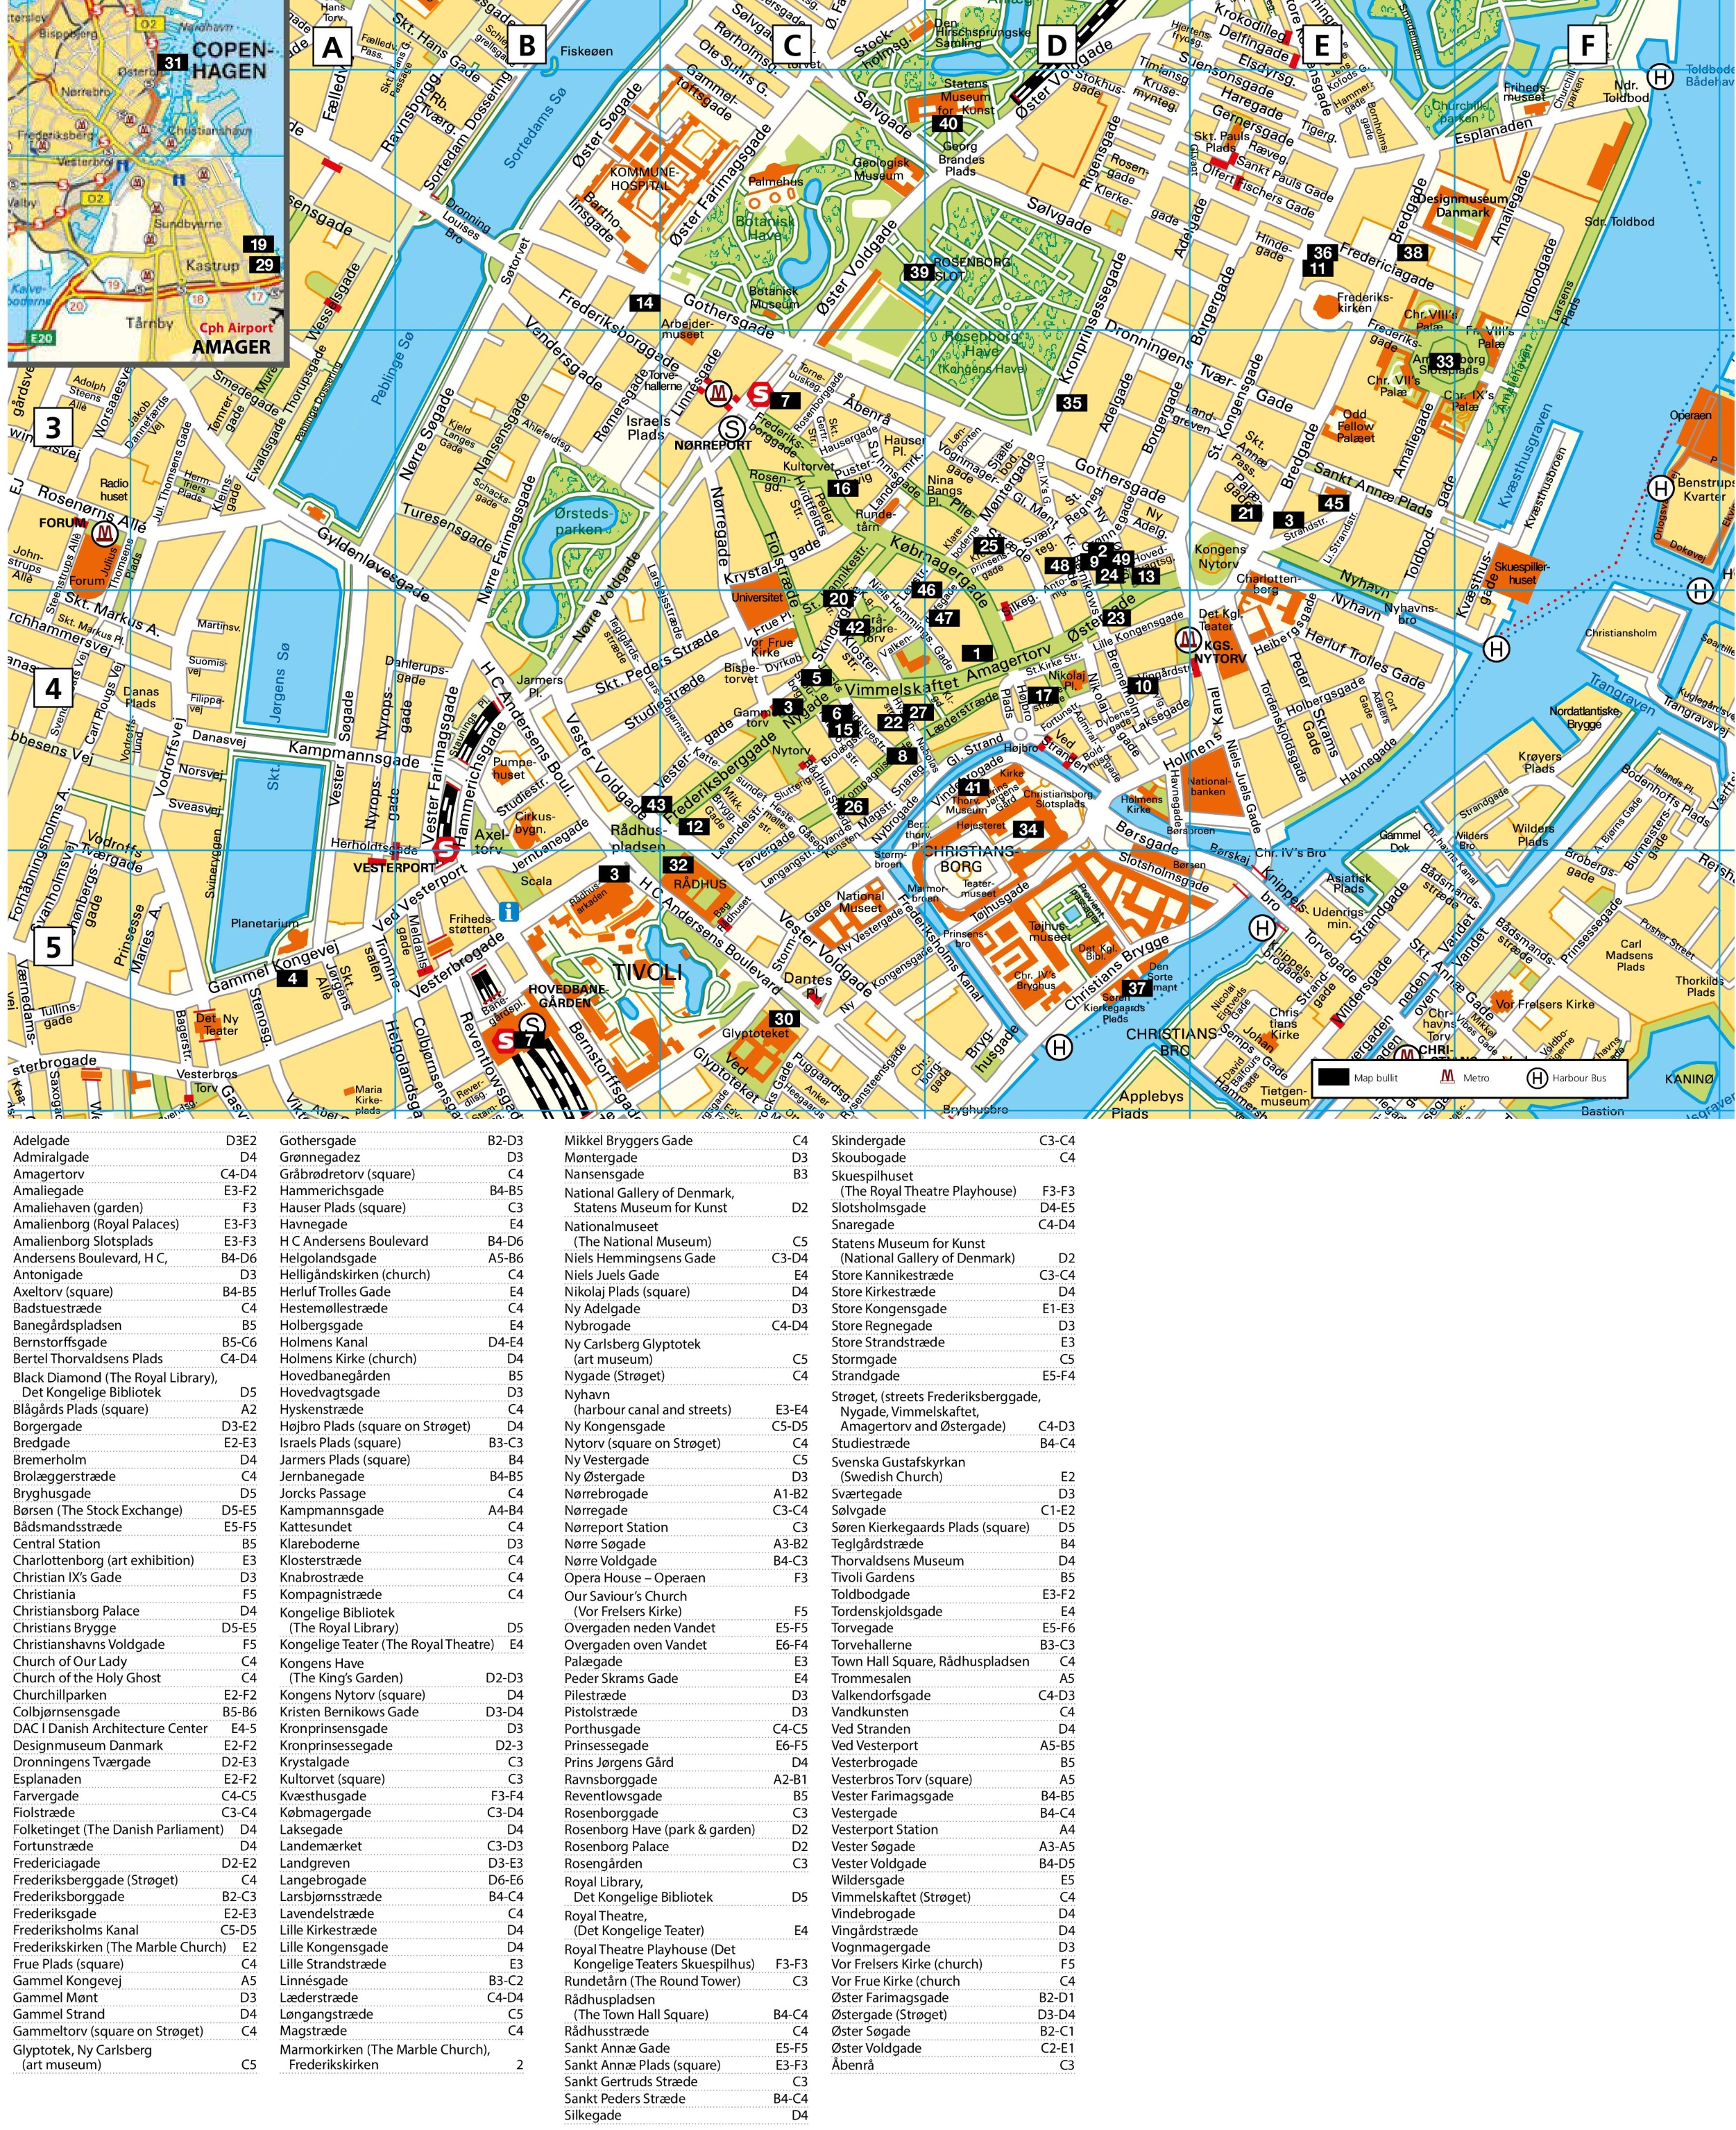 Copenhagen tourist attractions map – Copenhagen Tourist Attractions Map